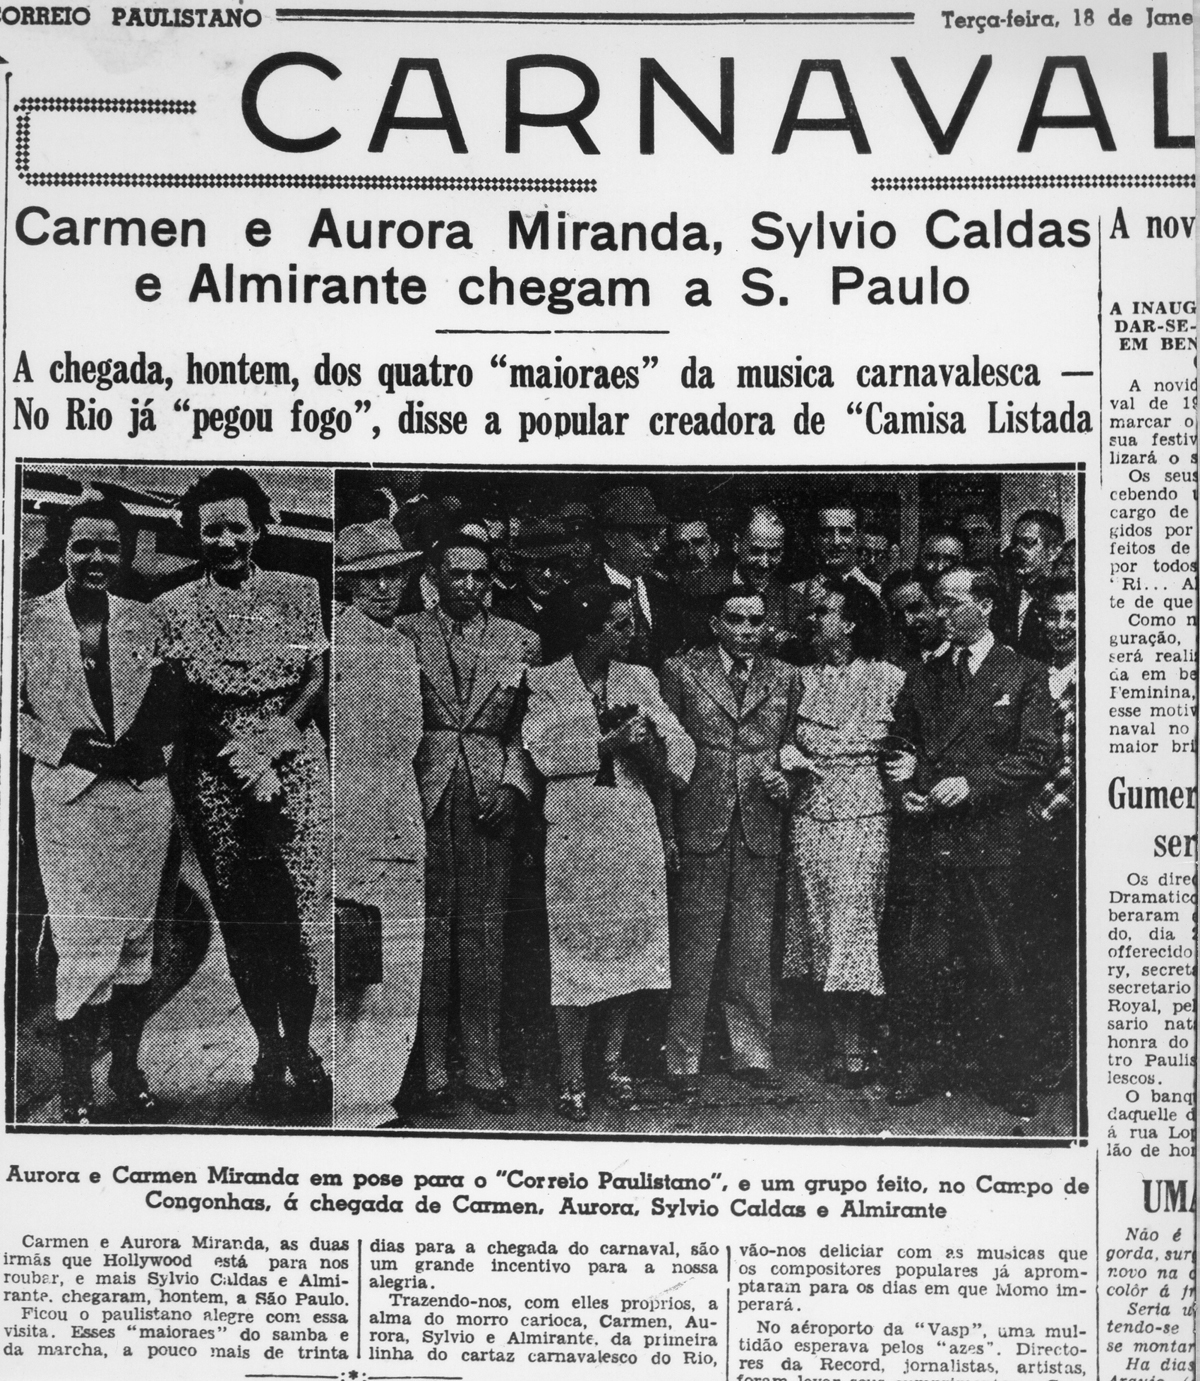 Correio Paulistano, 1938<a style='float:right' href='https://www3.al.sp.gov.br/repositorio/noticia/03-2008/correiopaulistano1938.jpg' target=_blank><img src='/_img/material-file-download-white.png' width='14px' alt='Clique para baixar a imagem'></a>